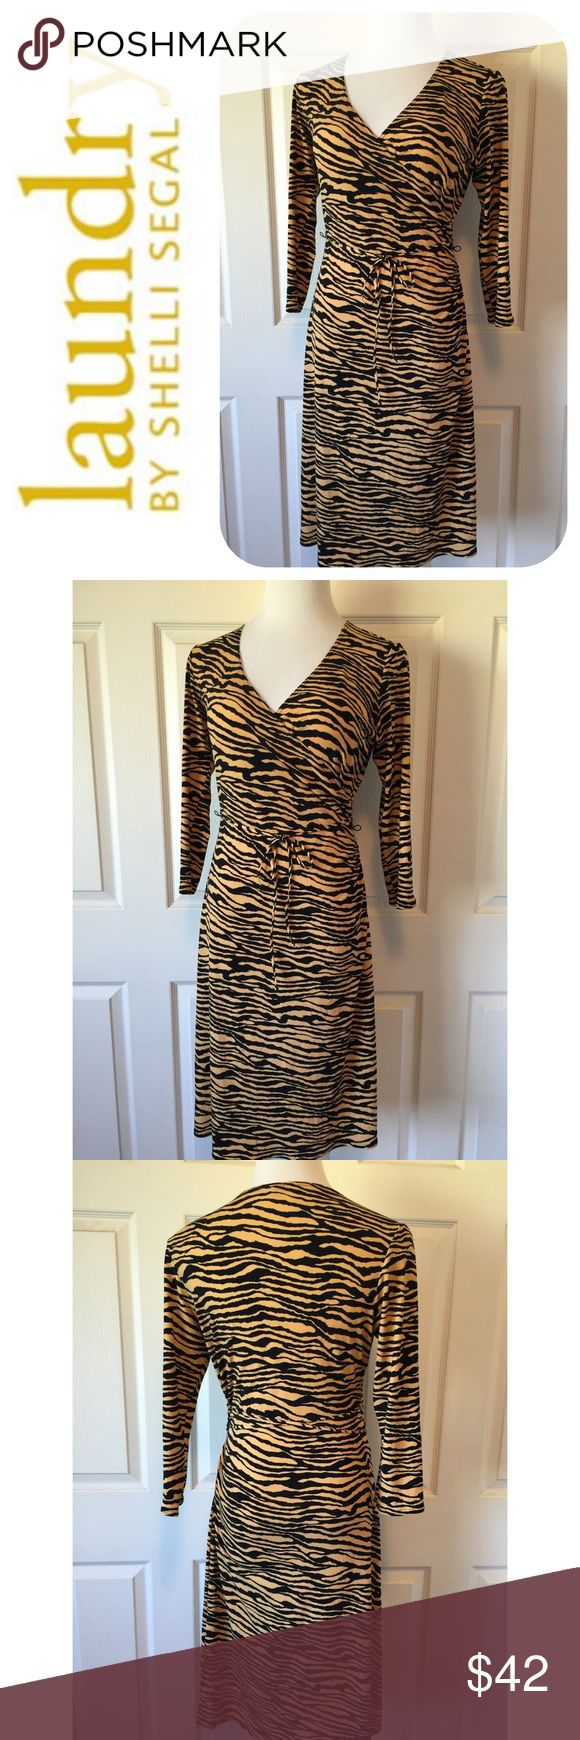 """LAUNDRY BY SHELLI SEGAL ANIMAL PRNT WRAP DRESS Beautiful Laundry By Shelli Segal Dress🔹V- Neckline🔹Faux Wrap🔹Size 8: 35"""" Bust, 45"""" Length, 28"""" Waist🔹Excellent Condition🔹Fabric: 98% polyester, 4% elasthane🔹Color: Mustard and Black🔹NO trades🔹Smoke Free Home🔹Bundle discount: 10% off two, 15% off three🔹Thank you for stopping by💕 Laundry by Shelli Segal Dresses"""